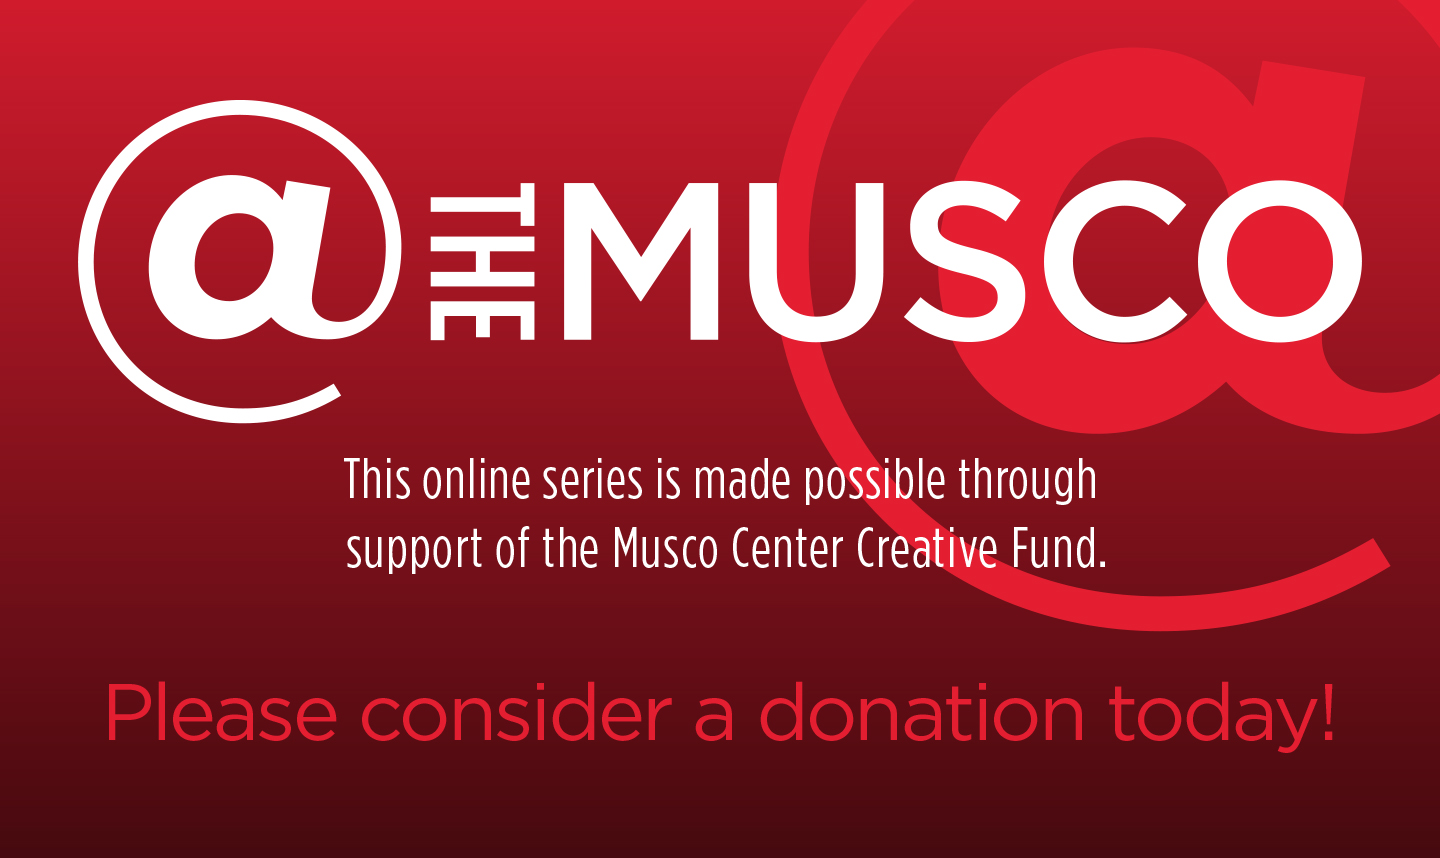 GIVE TODAY - Musco Center Creative Fund